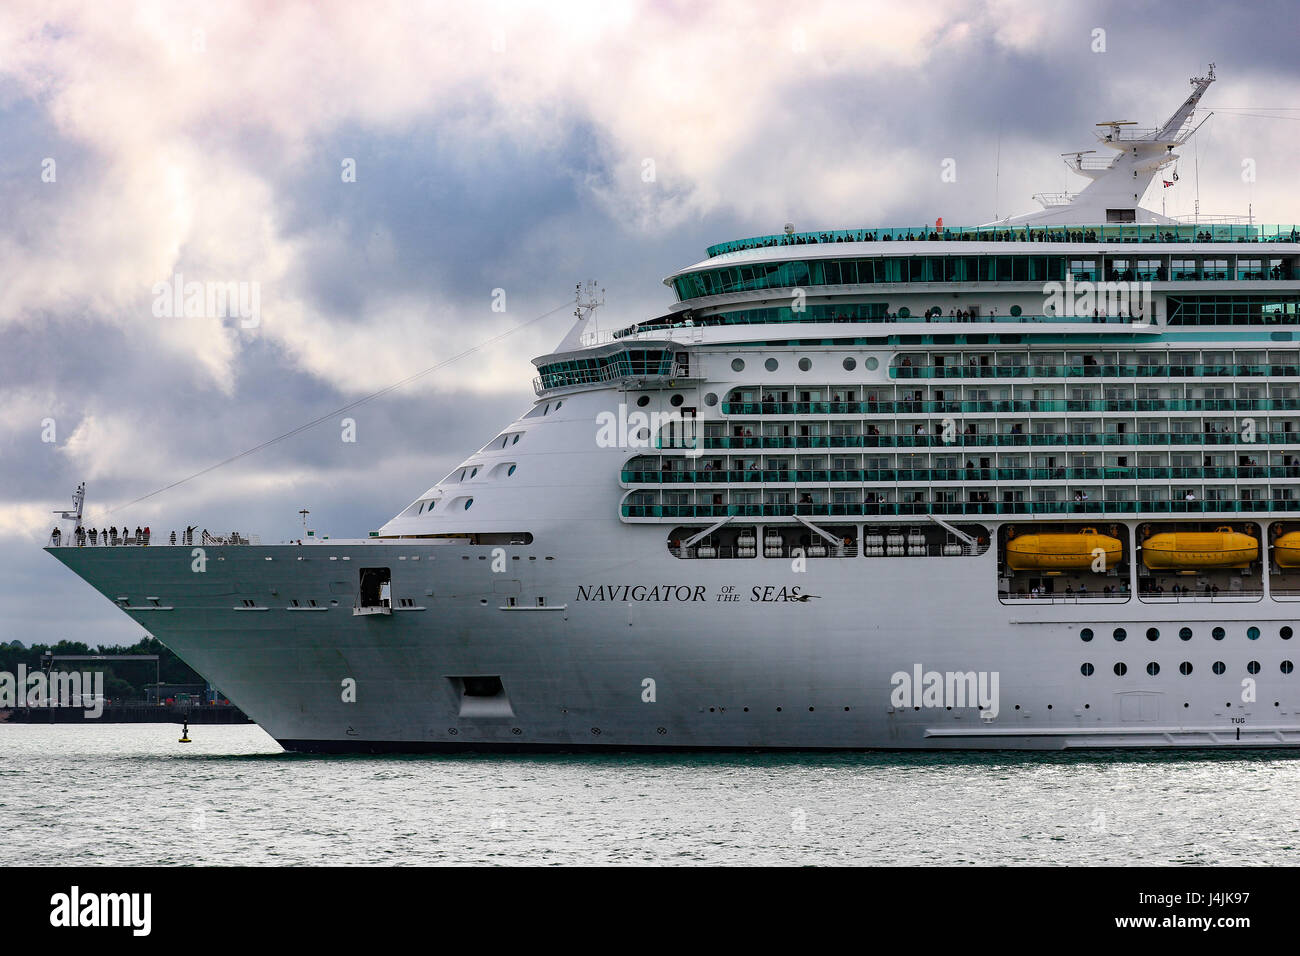 Royal Caribbean's MS Navigator of the Seas departs Southampton Port. - Stock Image